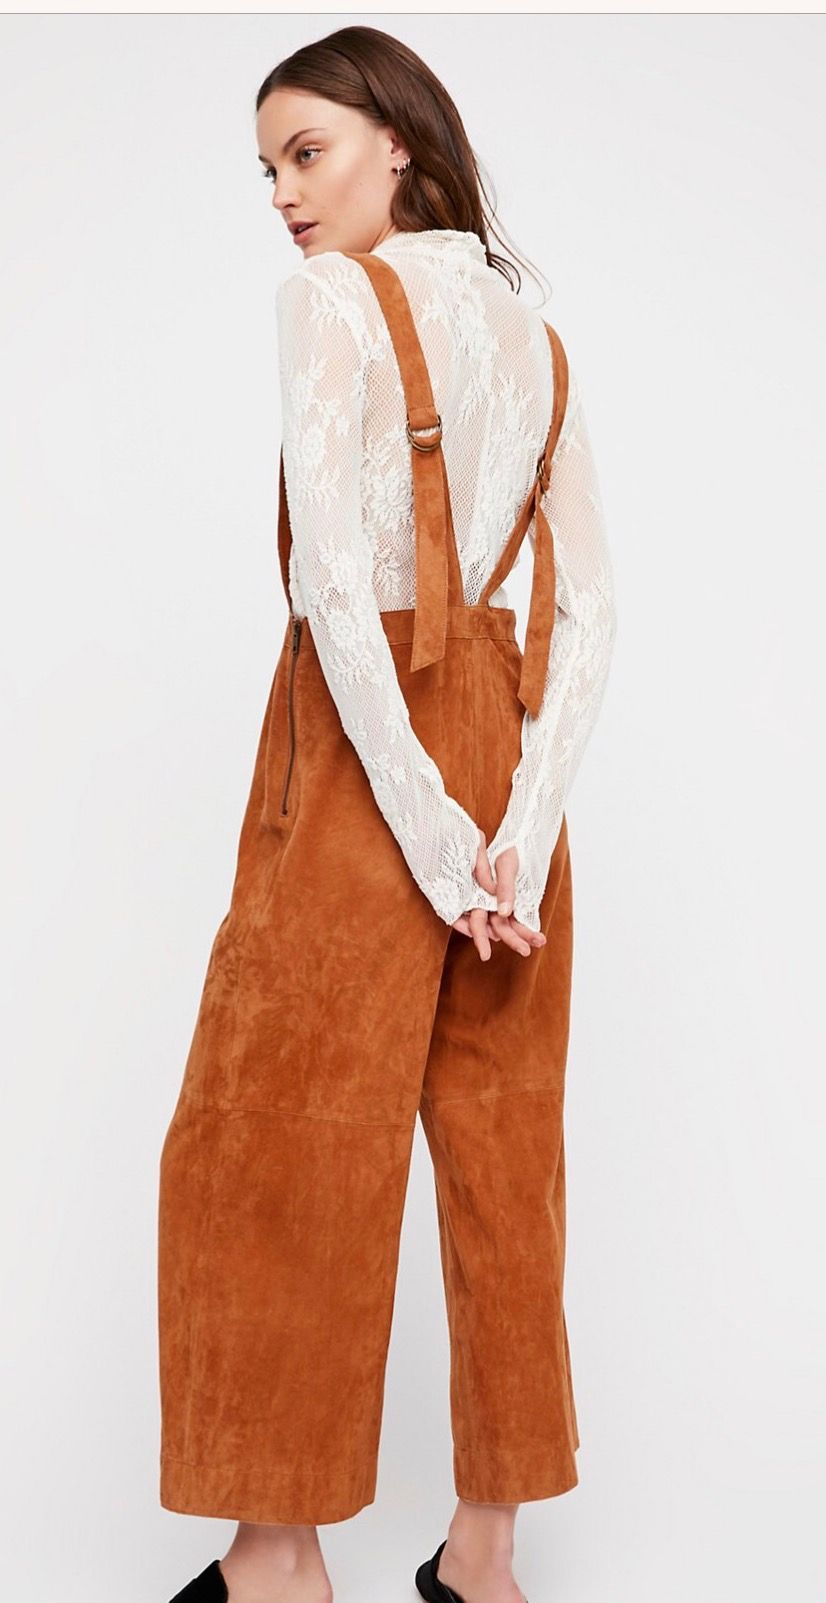 e0f64dace84 Miami jumpsuit by Free People. Cute midi length rusty brown suede jumper